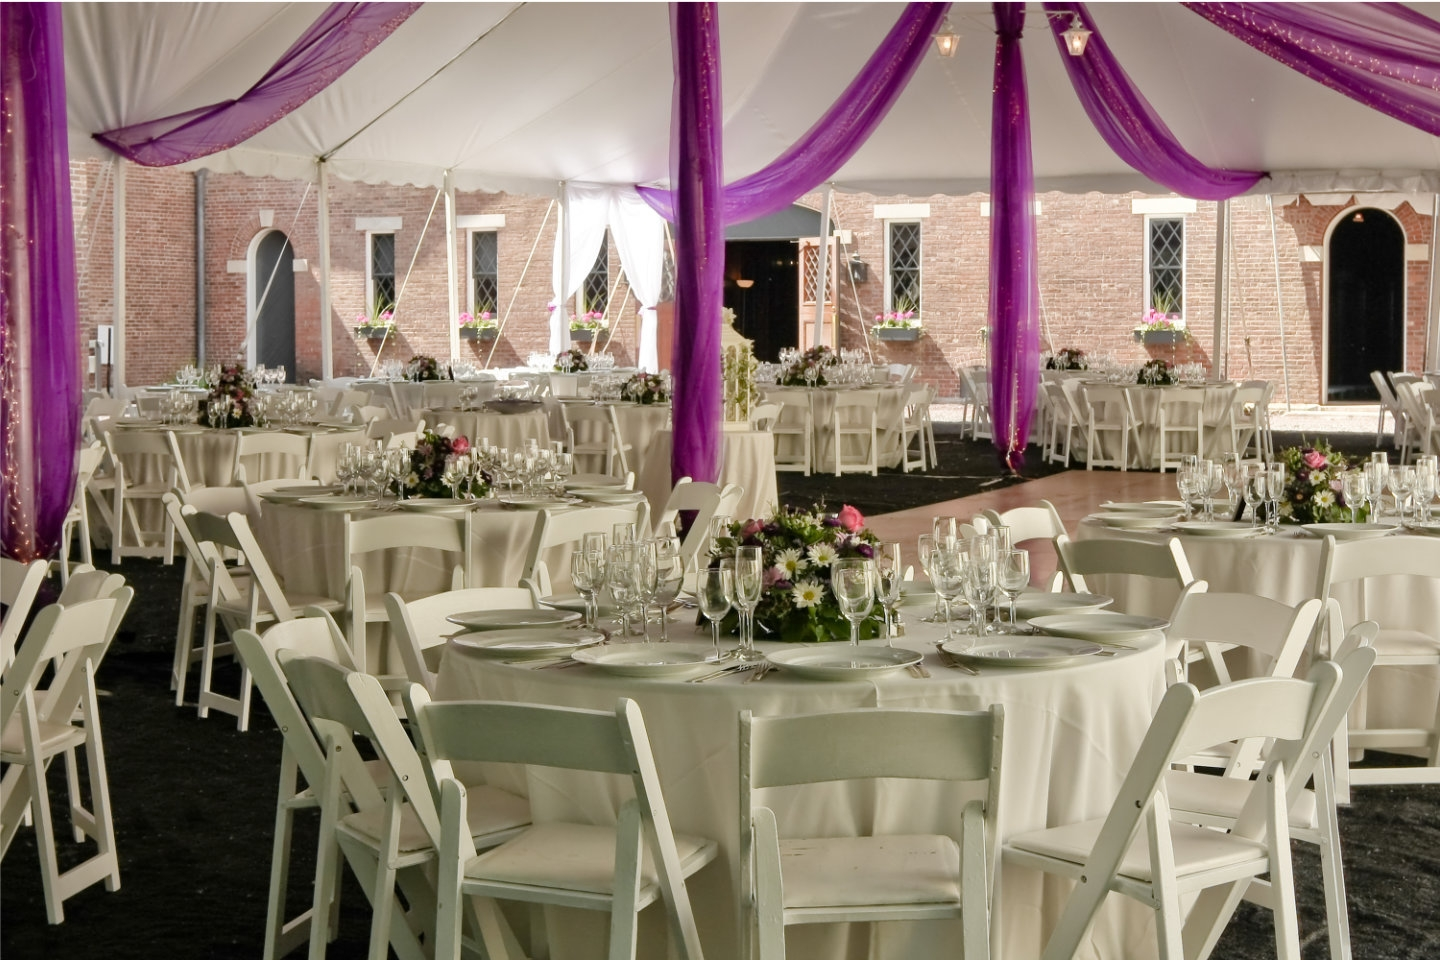 chair cover rentals dearborn mi folding daiso home time to play party tents tables chairs